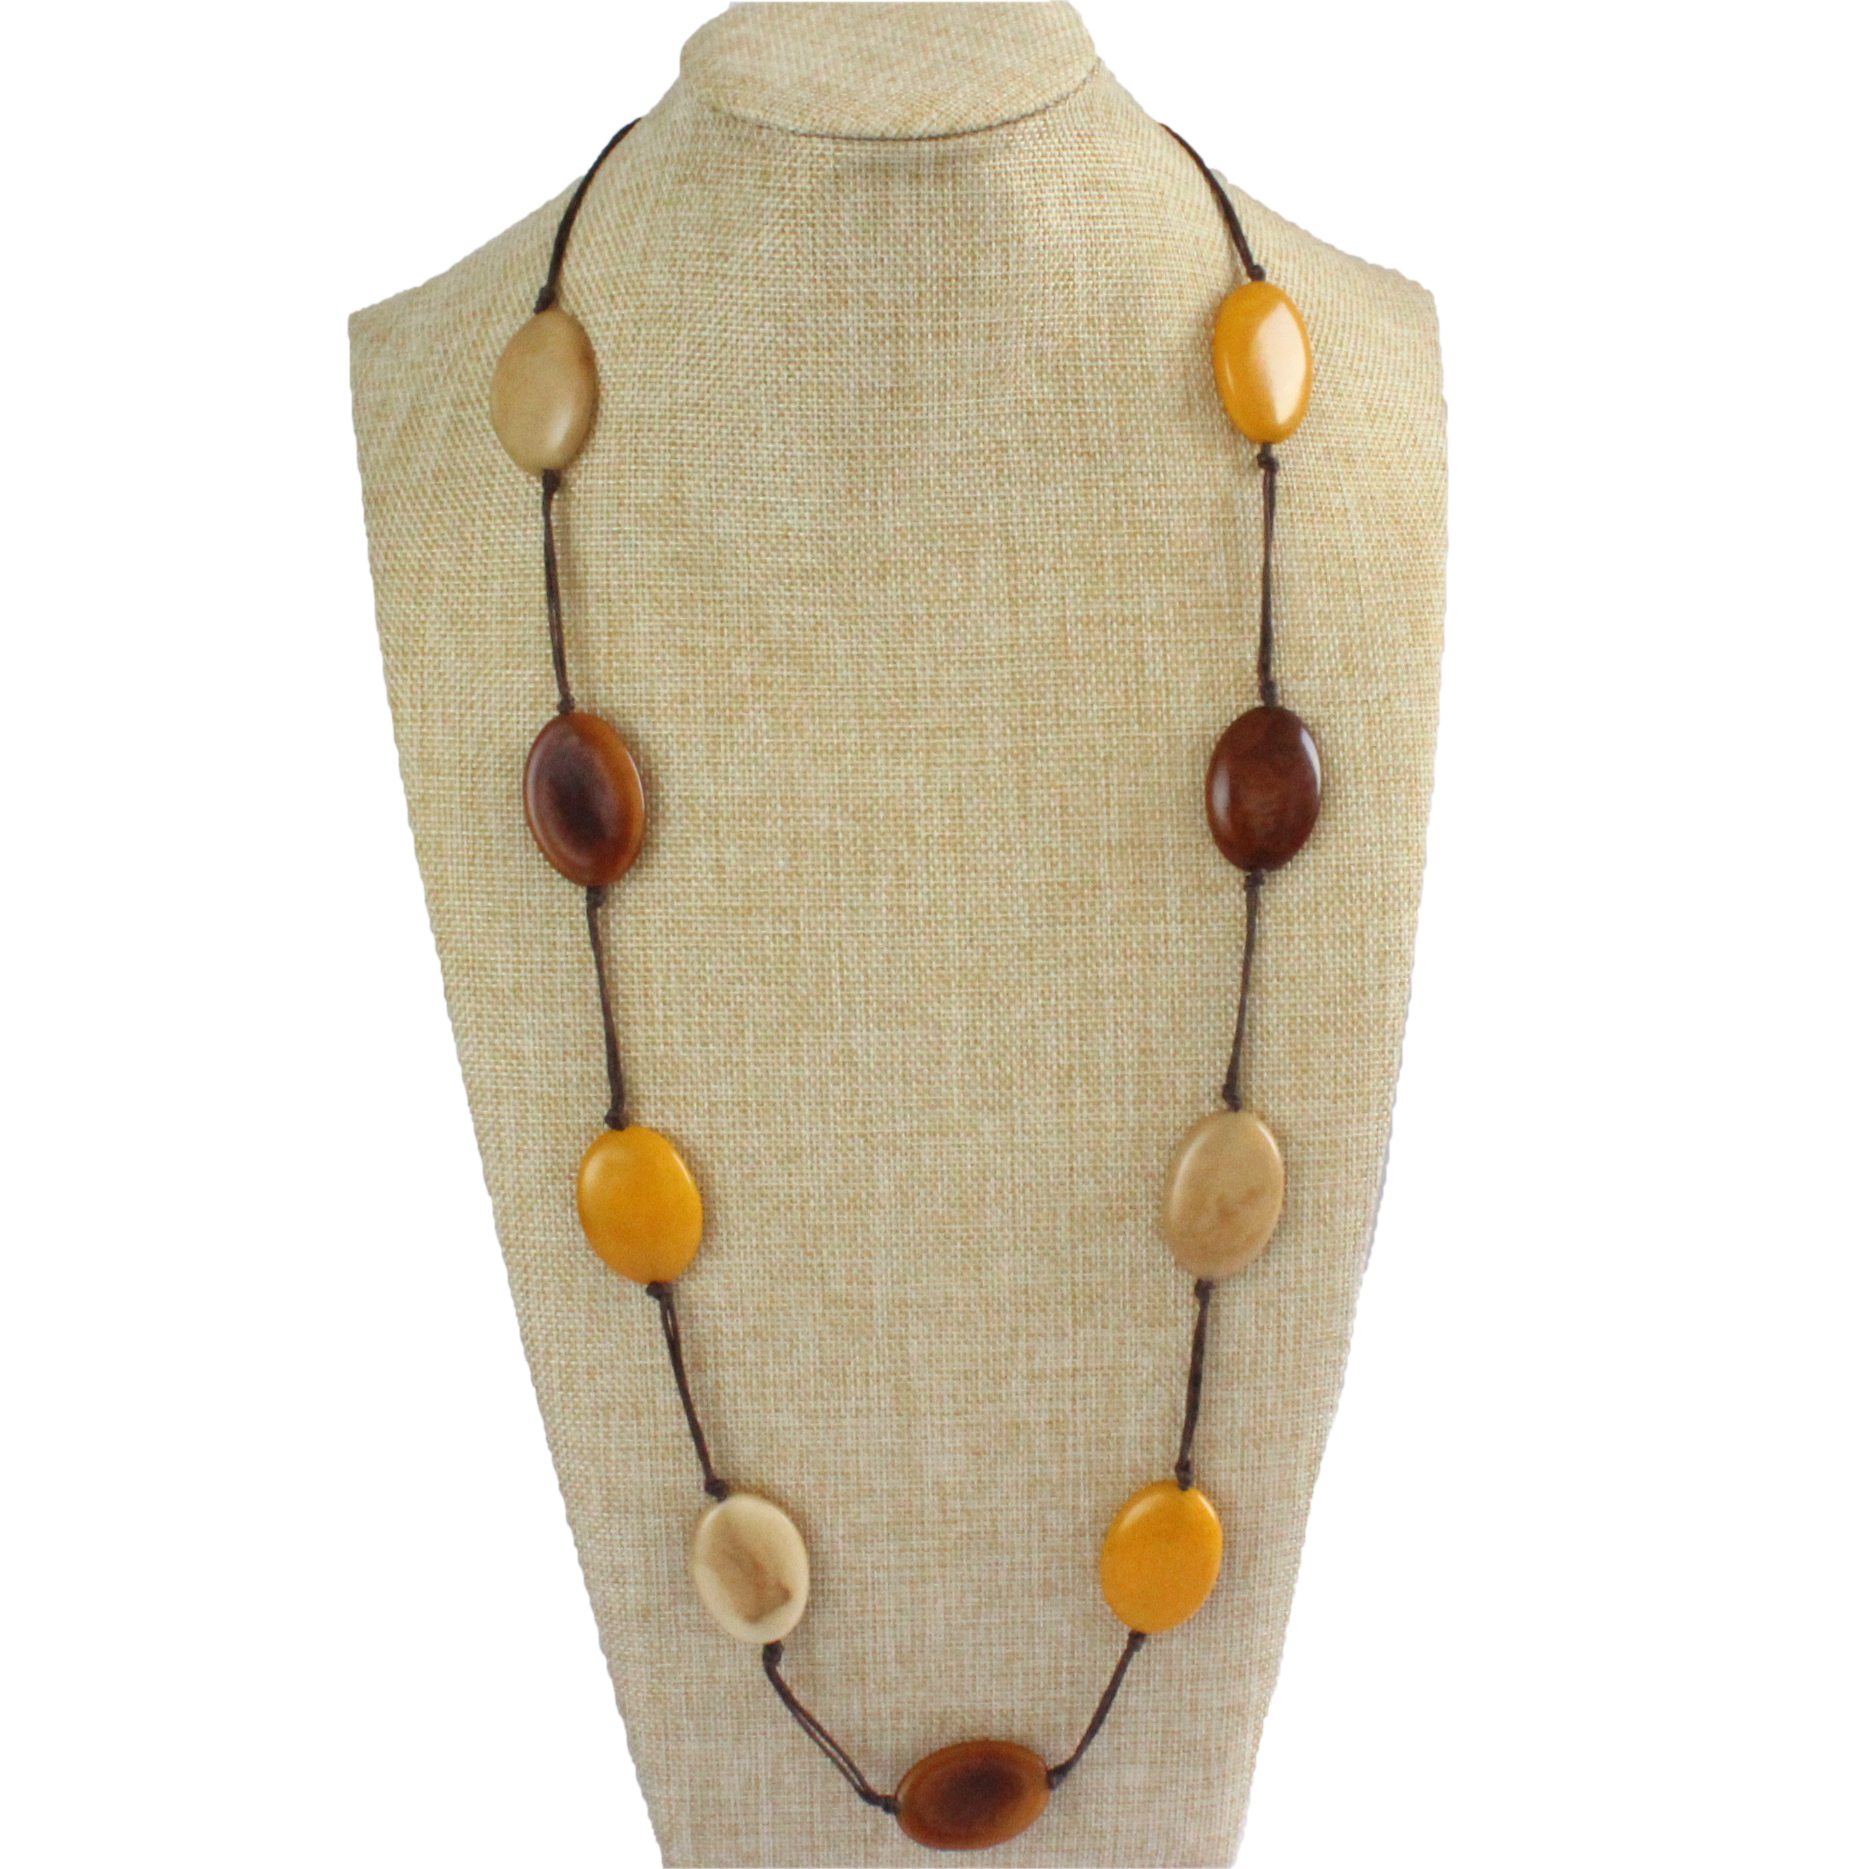 Necklace, sustainable tagua nut, autumn, adjustable, handmade, stand